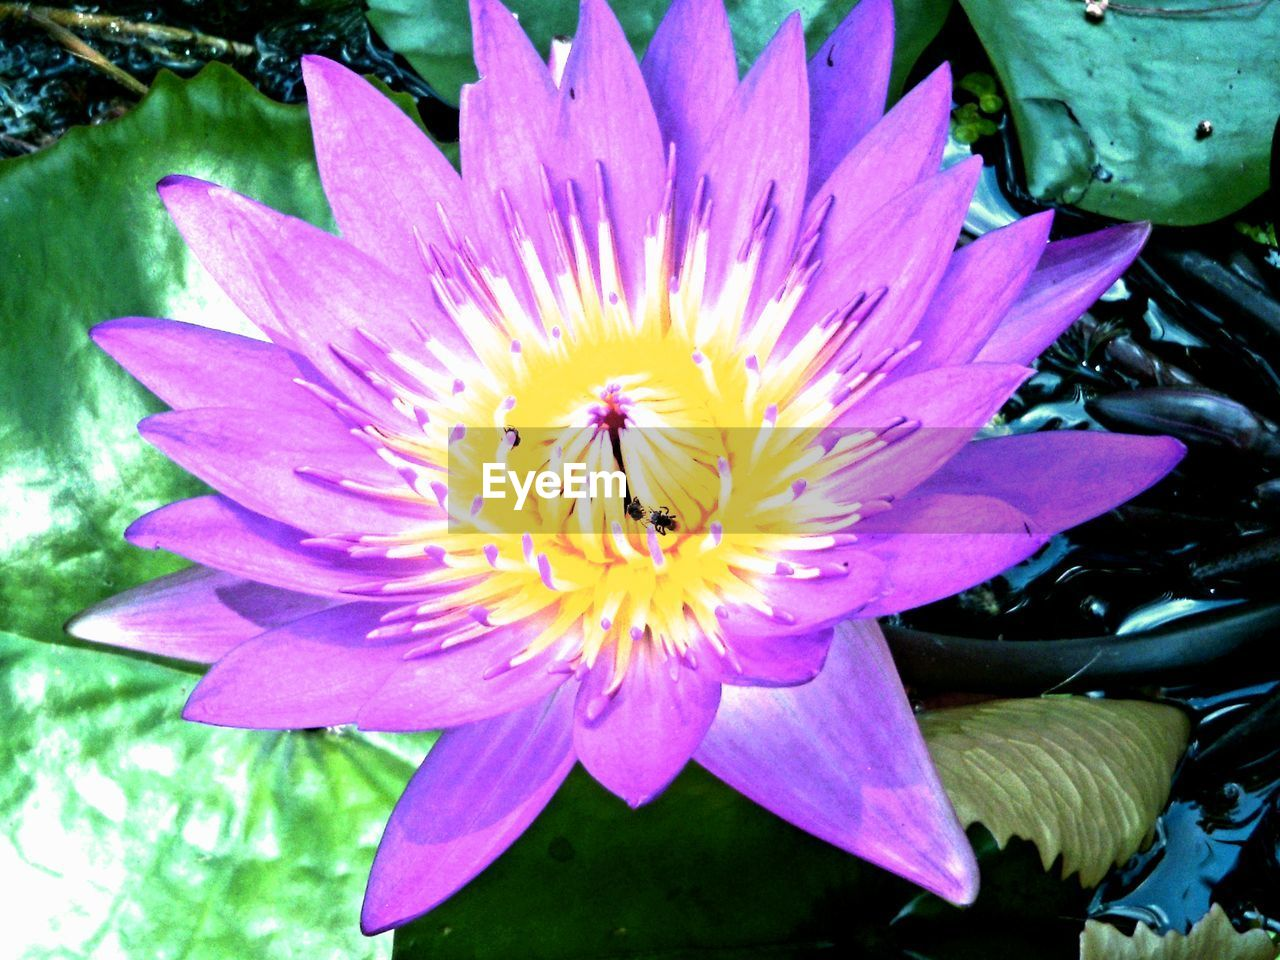 flower, petal, nature, beauty in nature, growth, freshness, fragility, flower head, plant, no people, insect, outdoors, close-up, day, water lily, blooming, animal themes